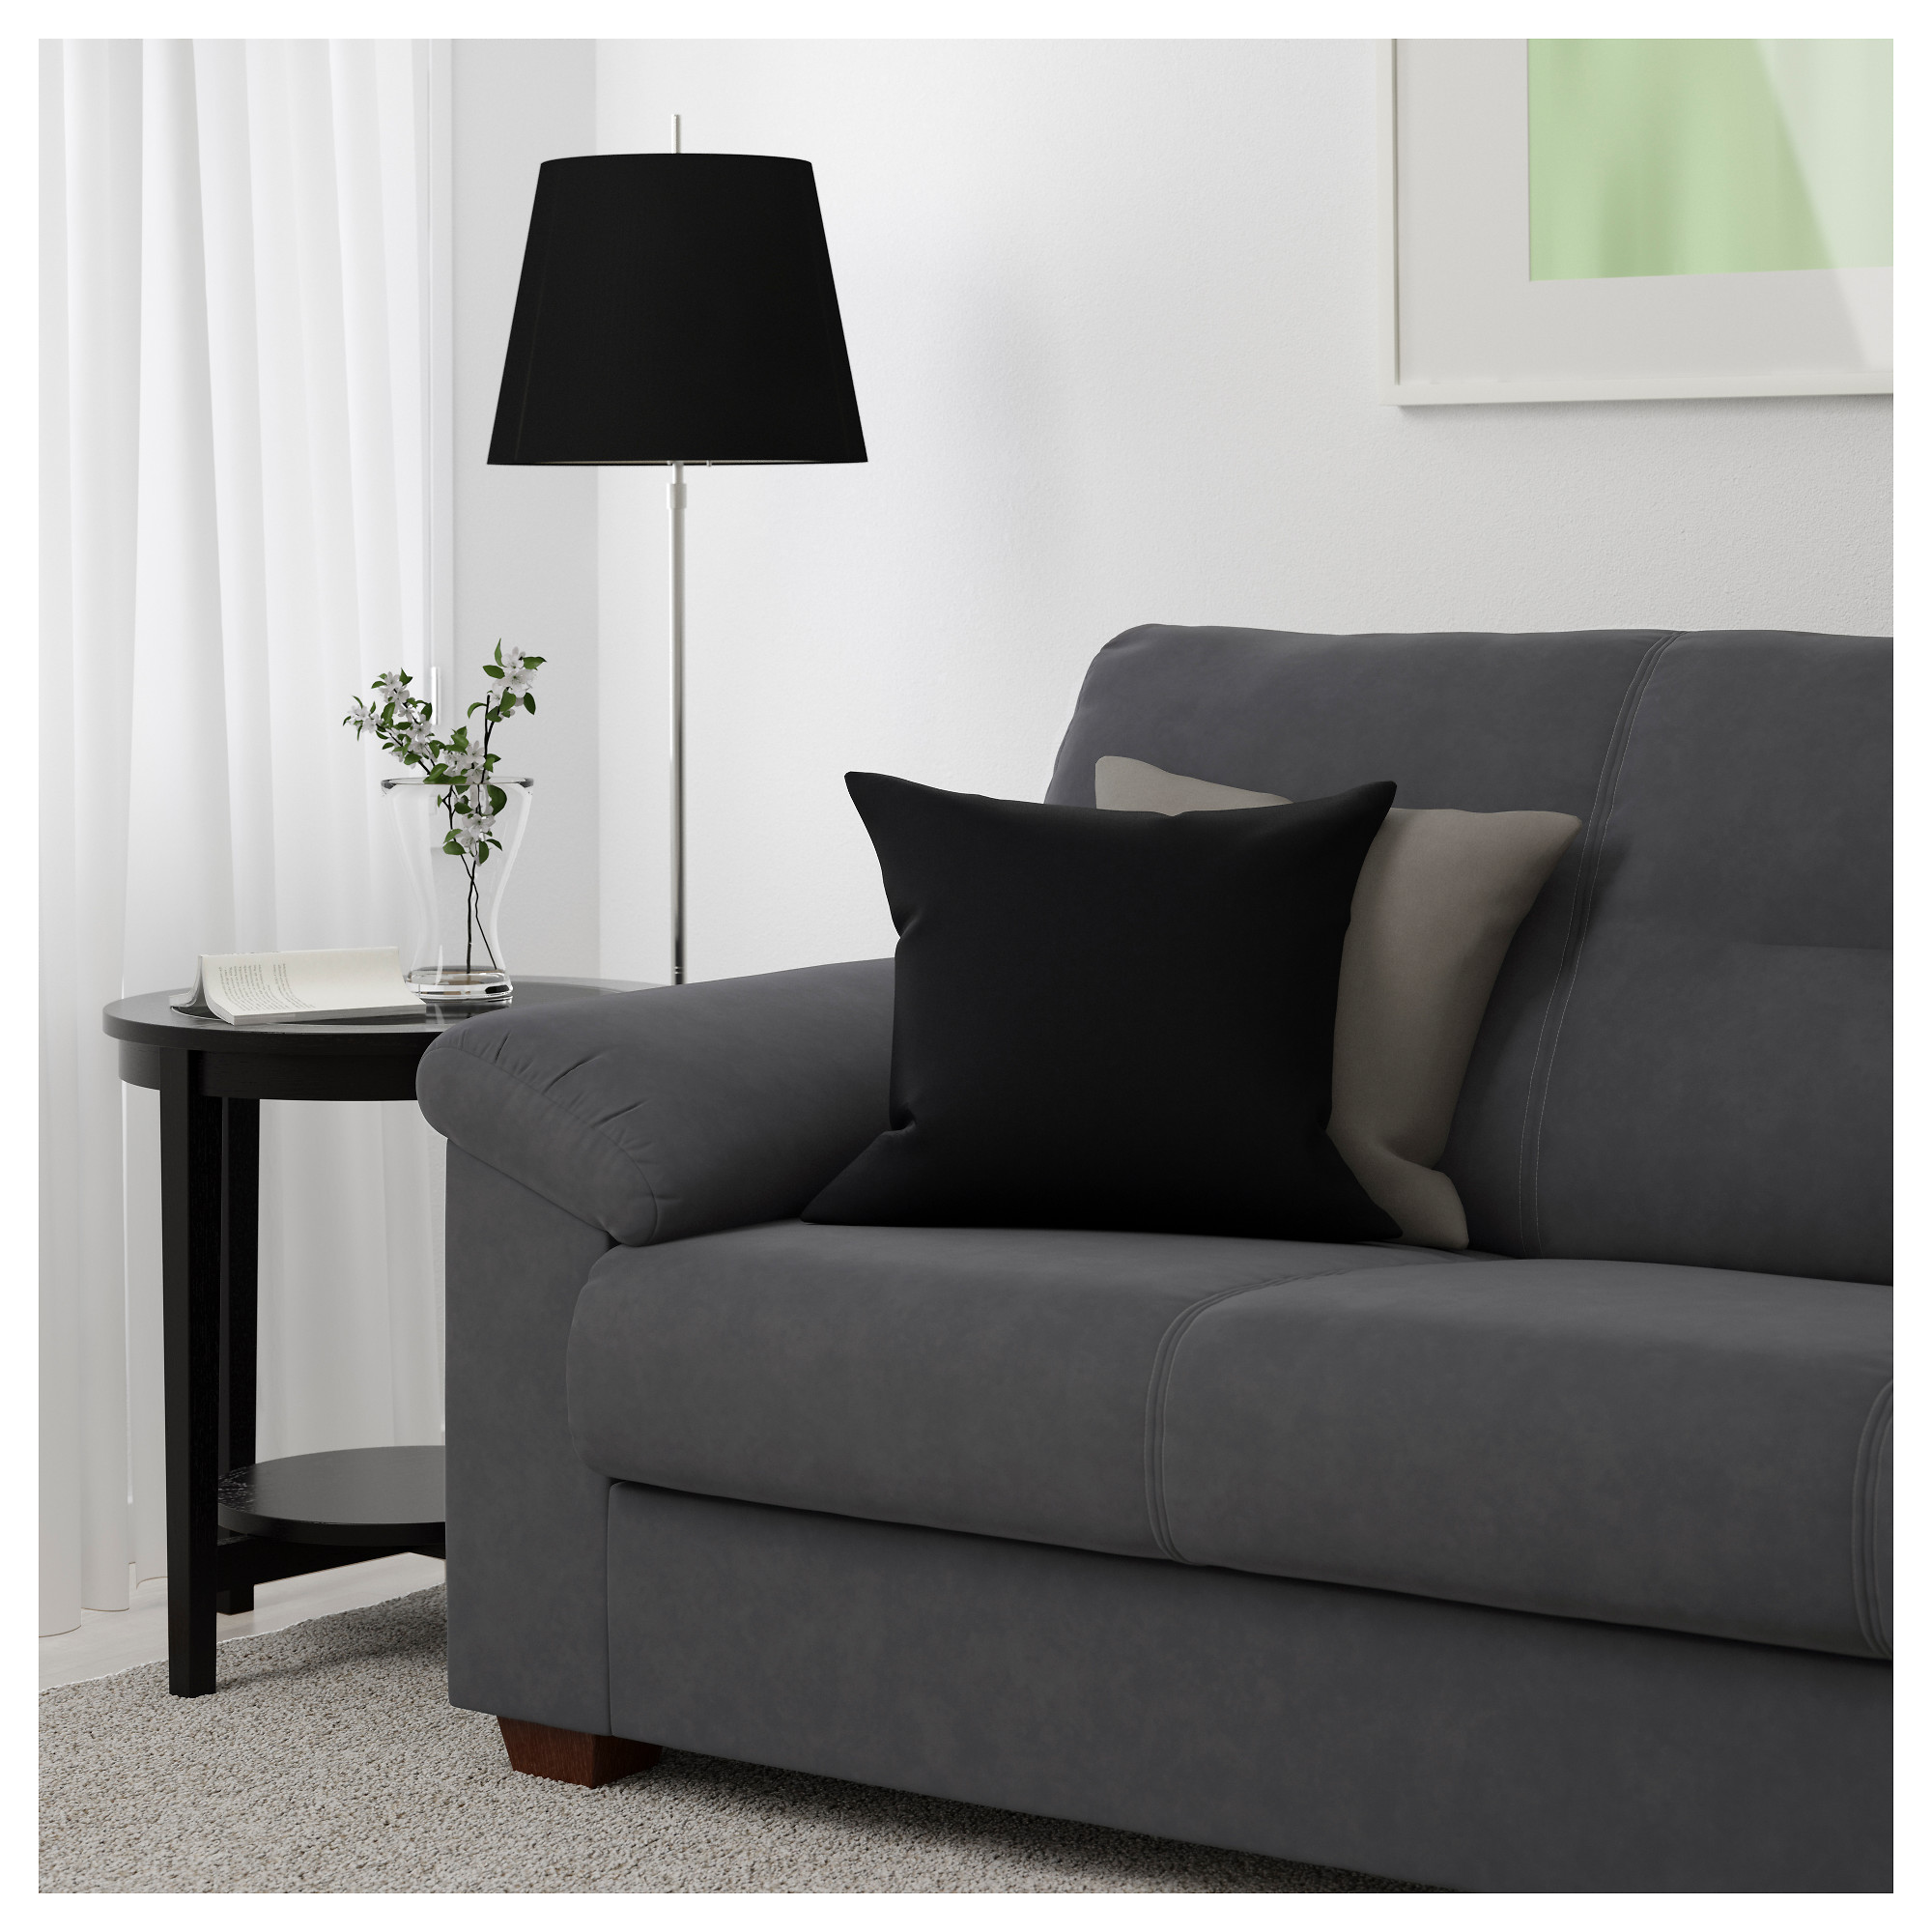 Ikea gray sofa knislinge sofa samsta dark gray ikea thesofa for Sofa jugendzimmer ikea